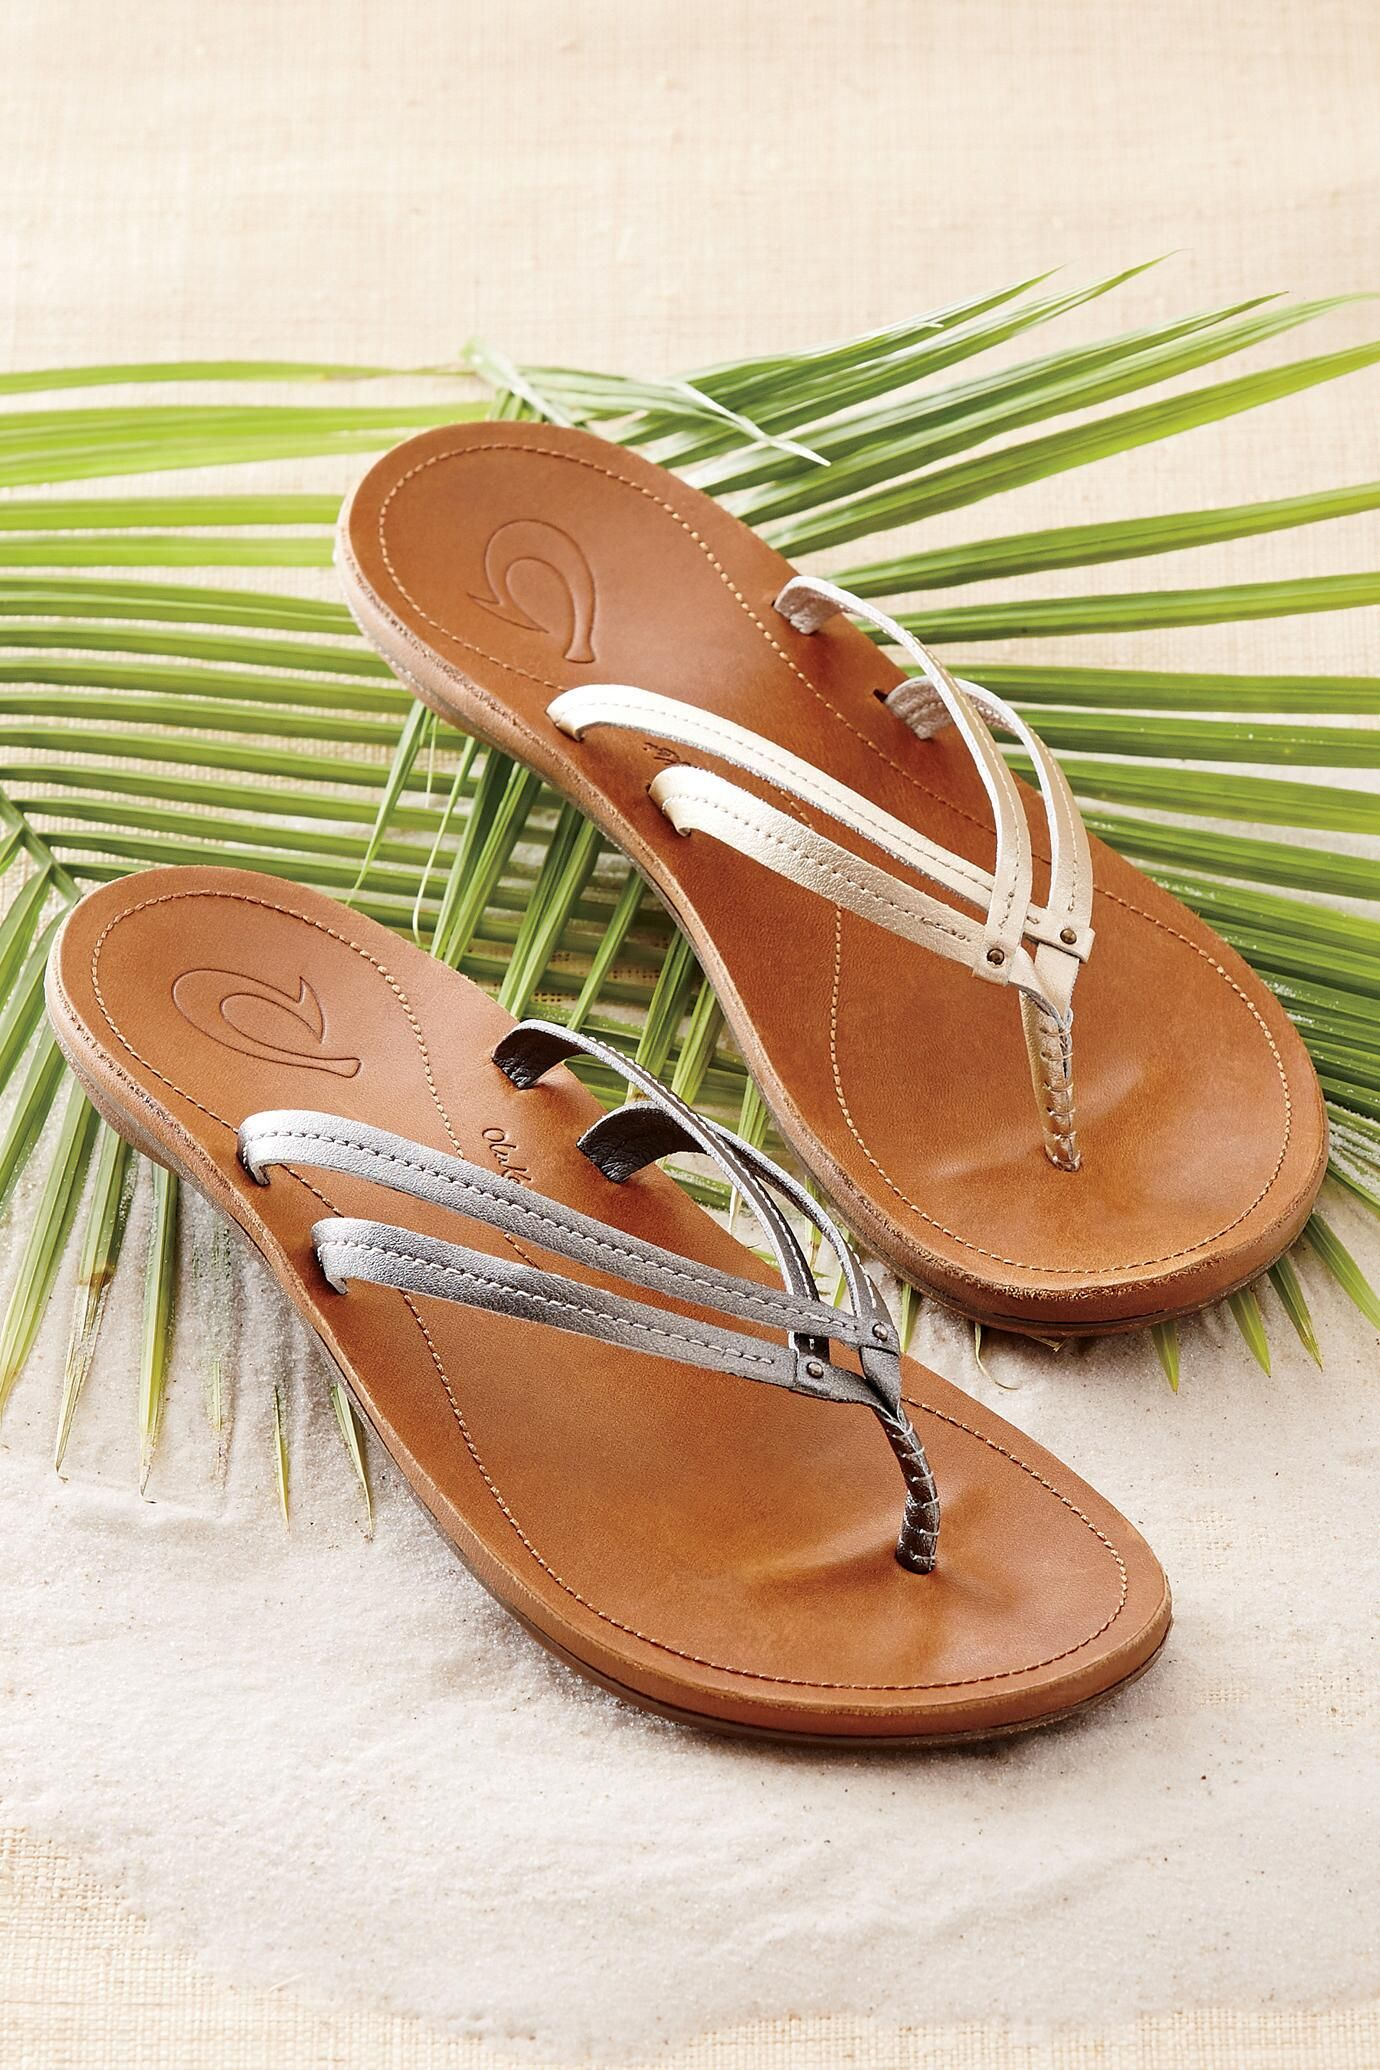 U'I Leather Thong Sandals from OluKai®: Exceptional Casual Clothing for Men & Women from #TerritoryAhead $90.00